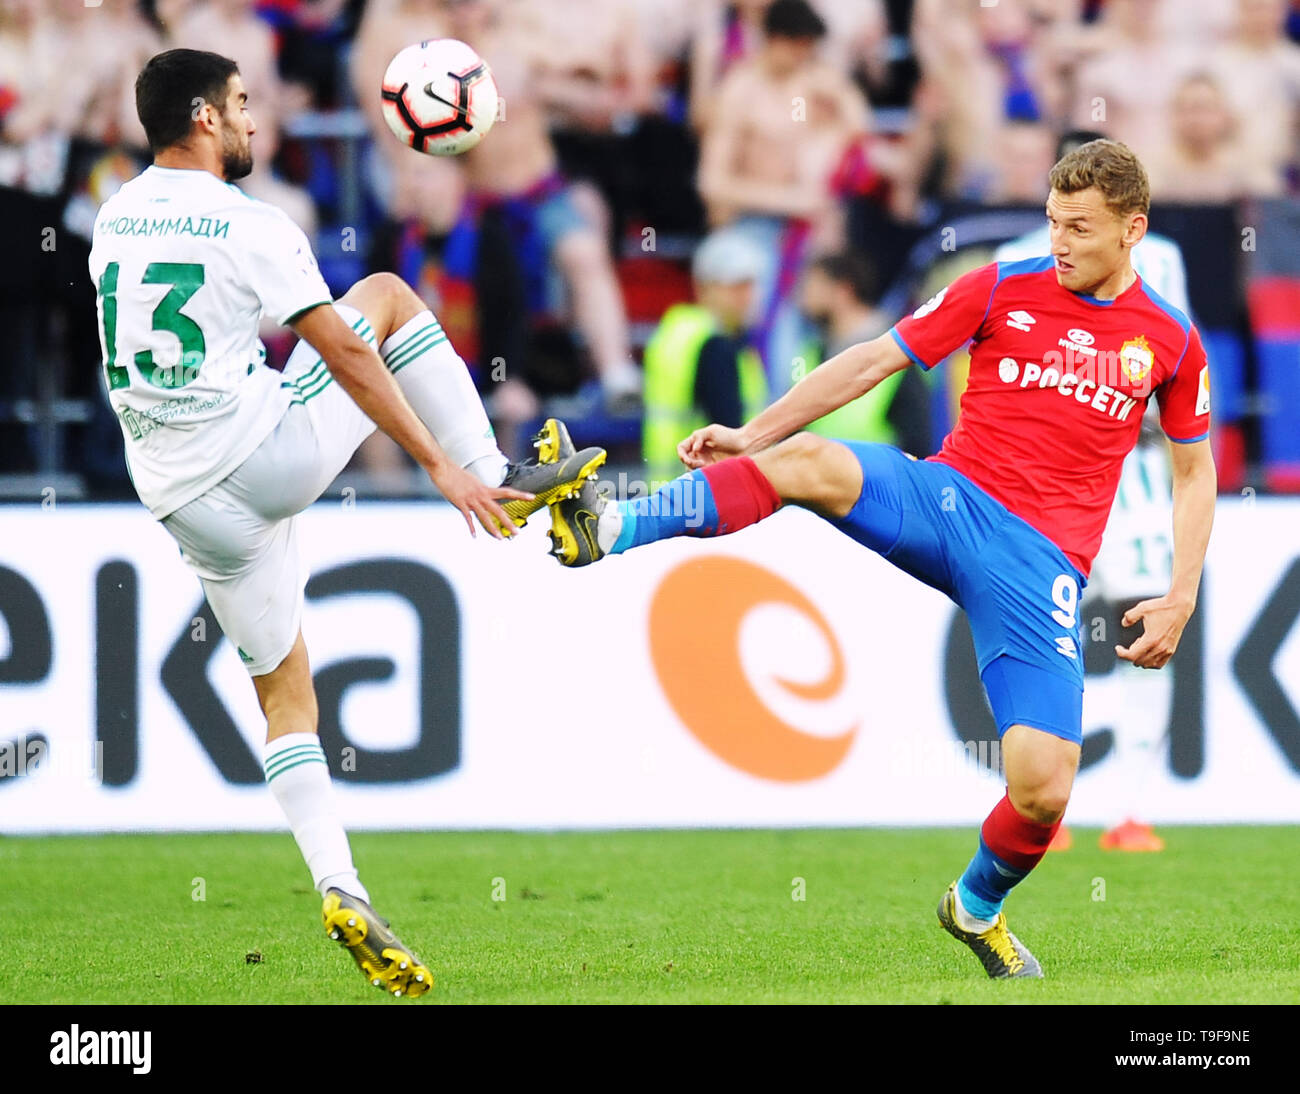 Moscow, Russia. 18th May, 2019. MOSCOW, RUSSIA - MAY 18: Fyodor Chalov of PFC CSKA Moscow and Milad Mohammadi of FC Akhmat Grozny vie for the ball during the Russian Football League match between PFC CSKA Moscow and FC Akhmat Grozny at Arena CSKA stadium on May 18, 2019 in Moscow, Russia. (Photo by Epsilon/Getty Images) Credit: ITAR-TASS News Agency/Alamy Live News - Stock Image